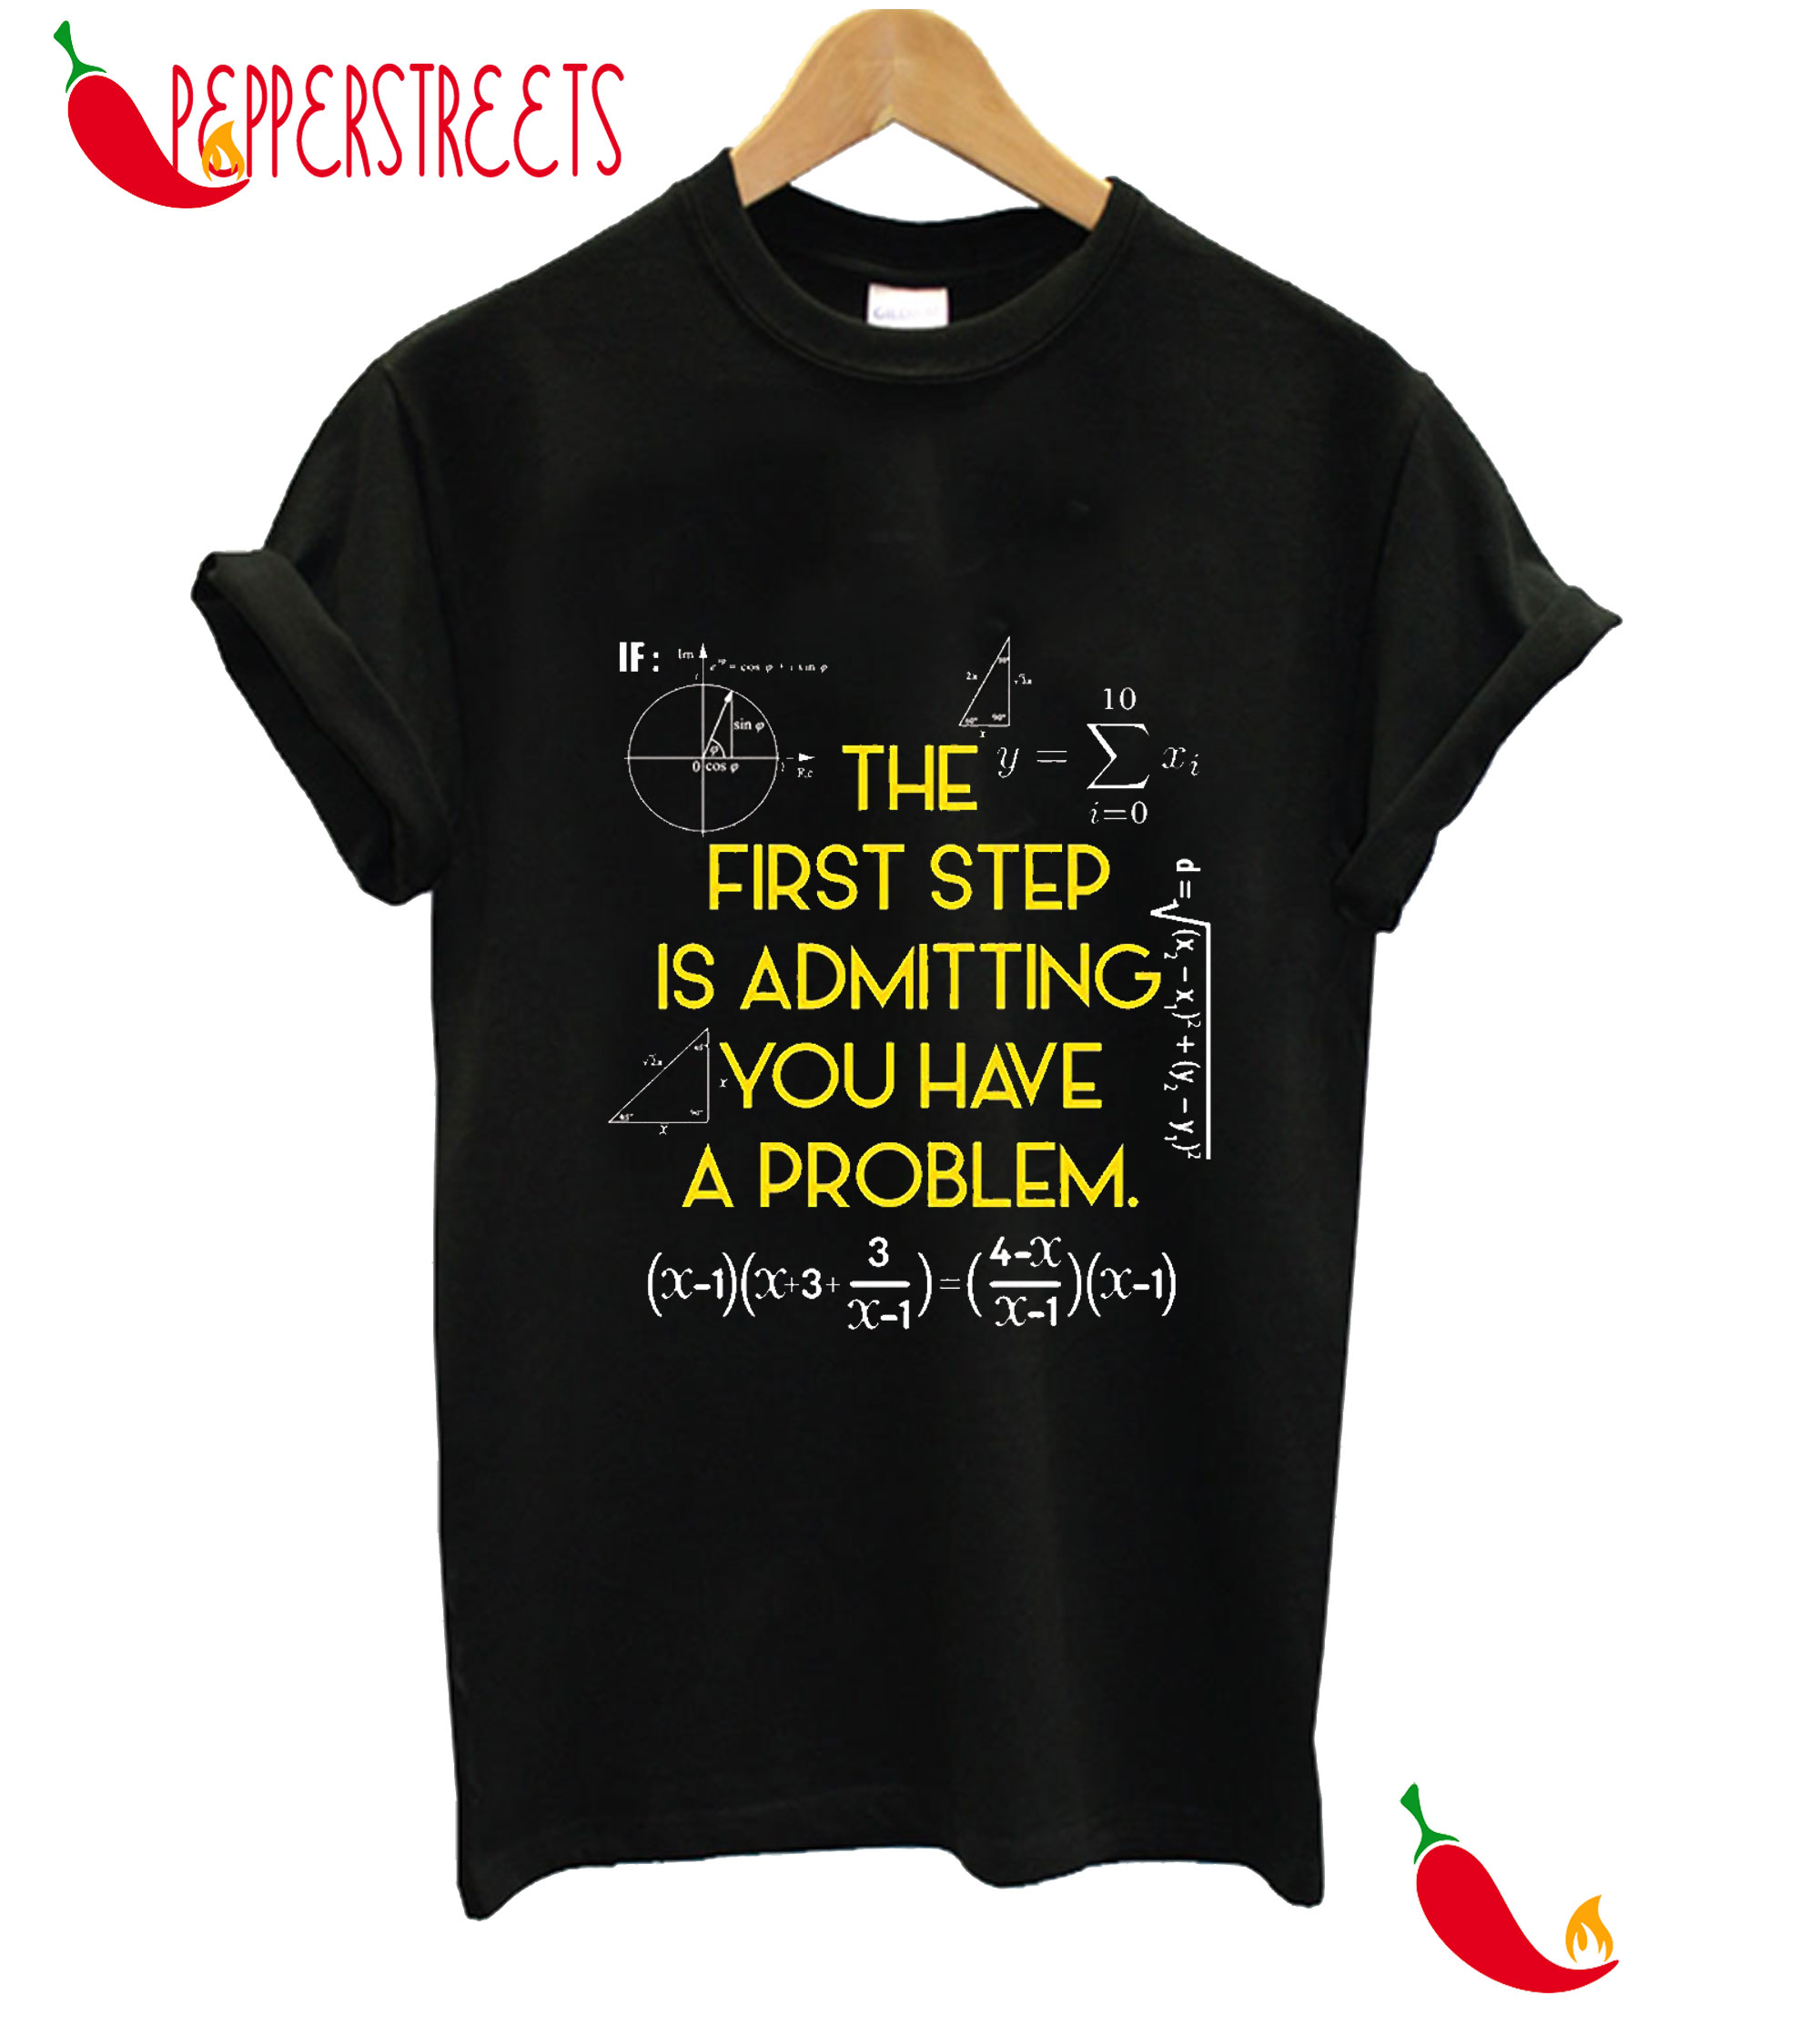 The First Step Is Admitting You Have A Problem T-Shirt